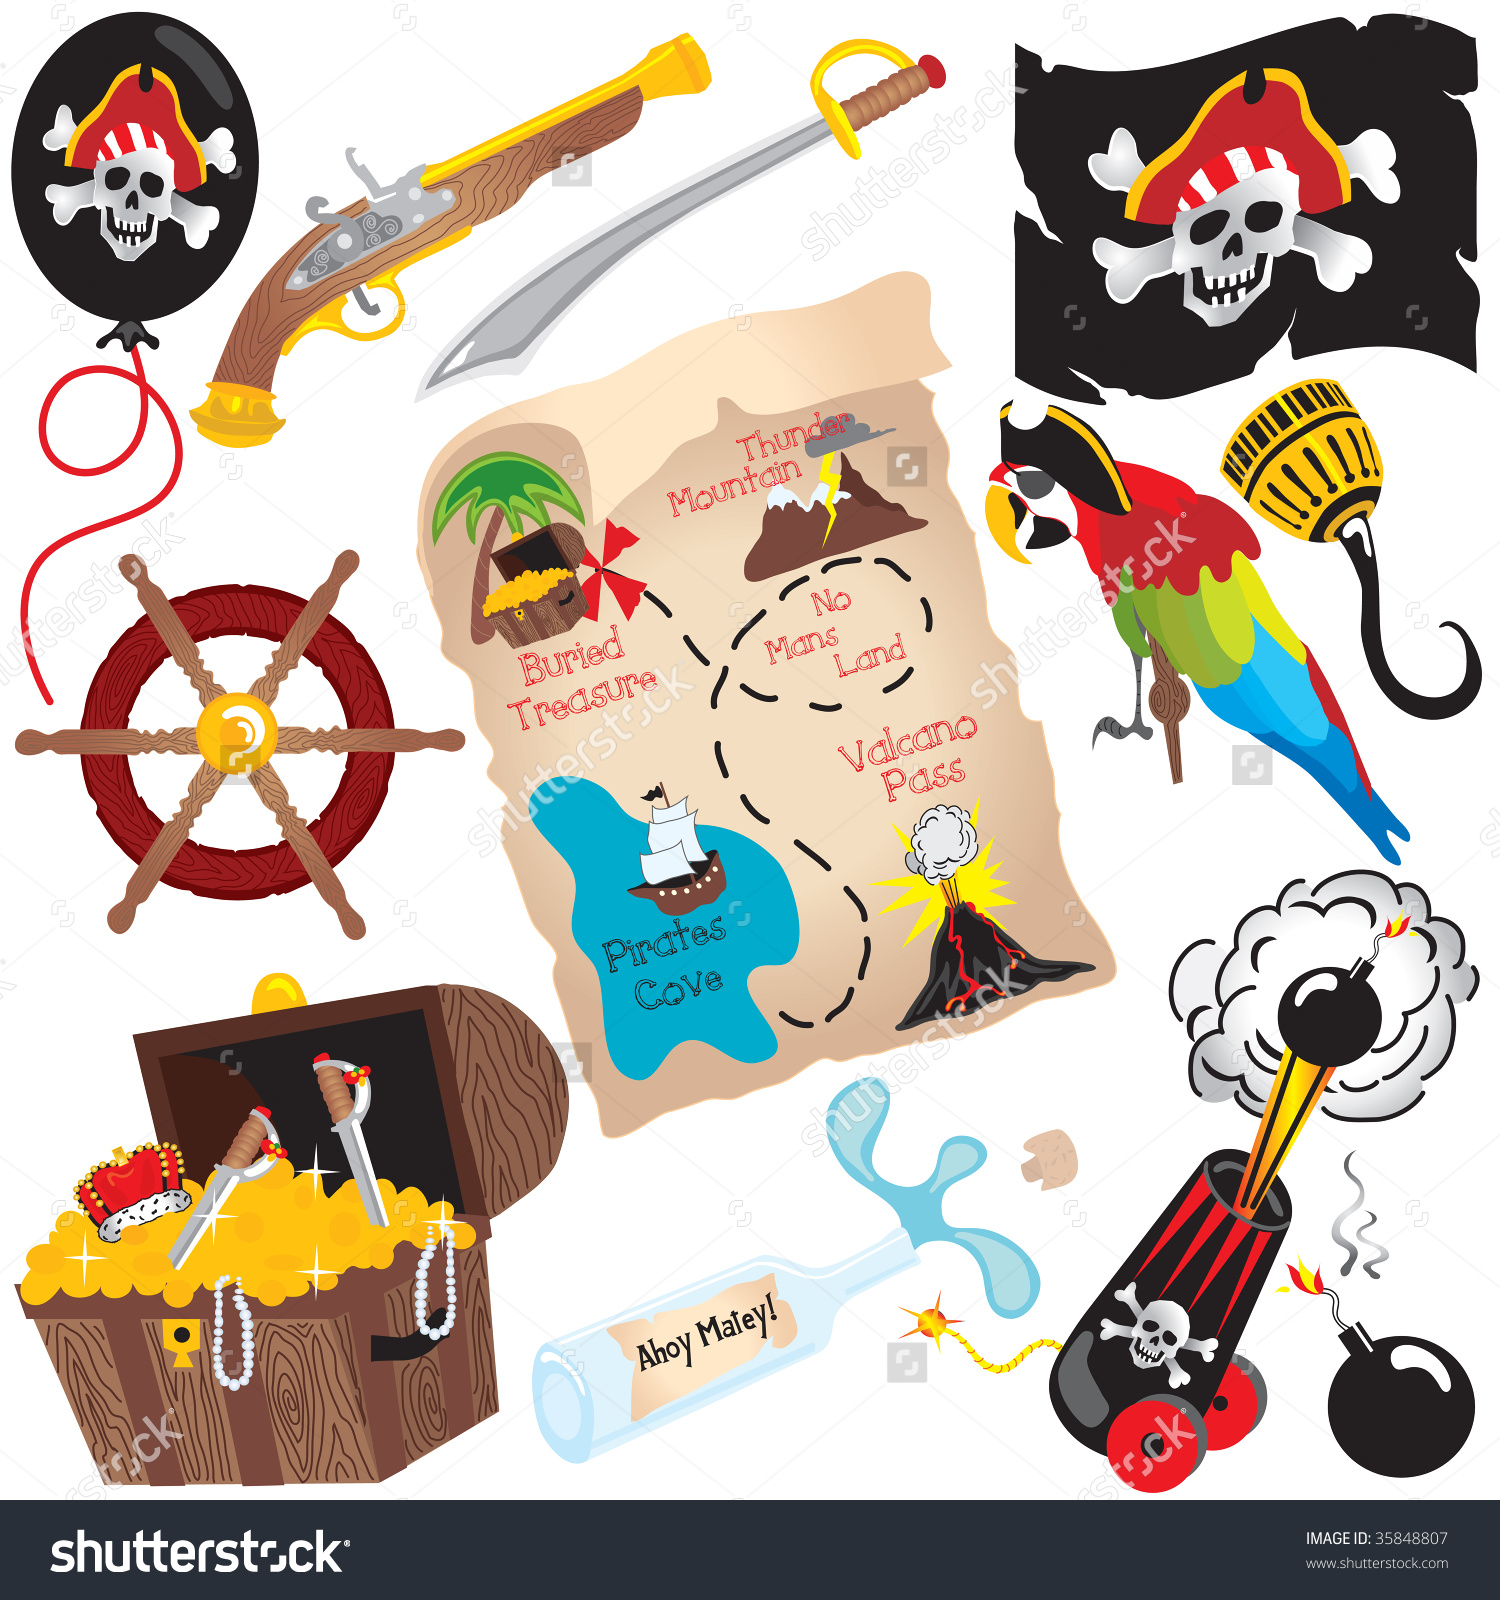 Pirate Birthday Party Clip Art Elements, Isolated On White Stock.